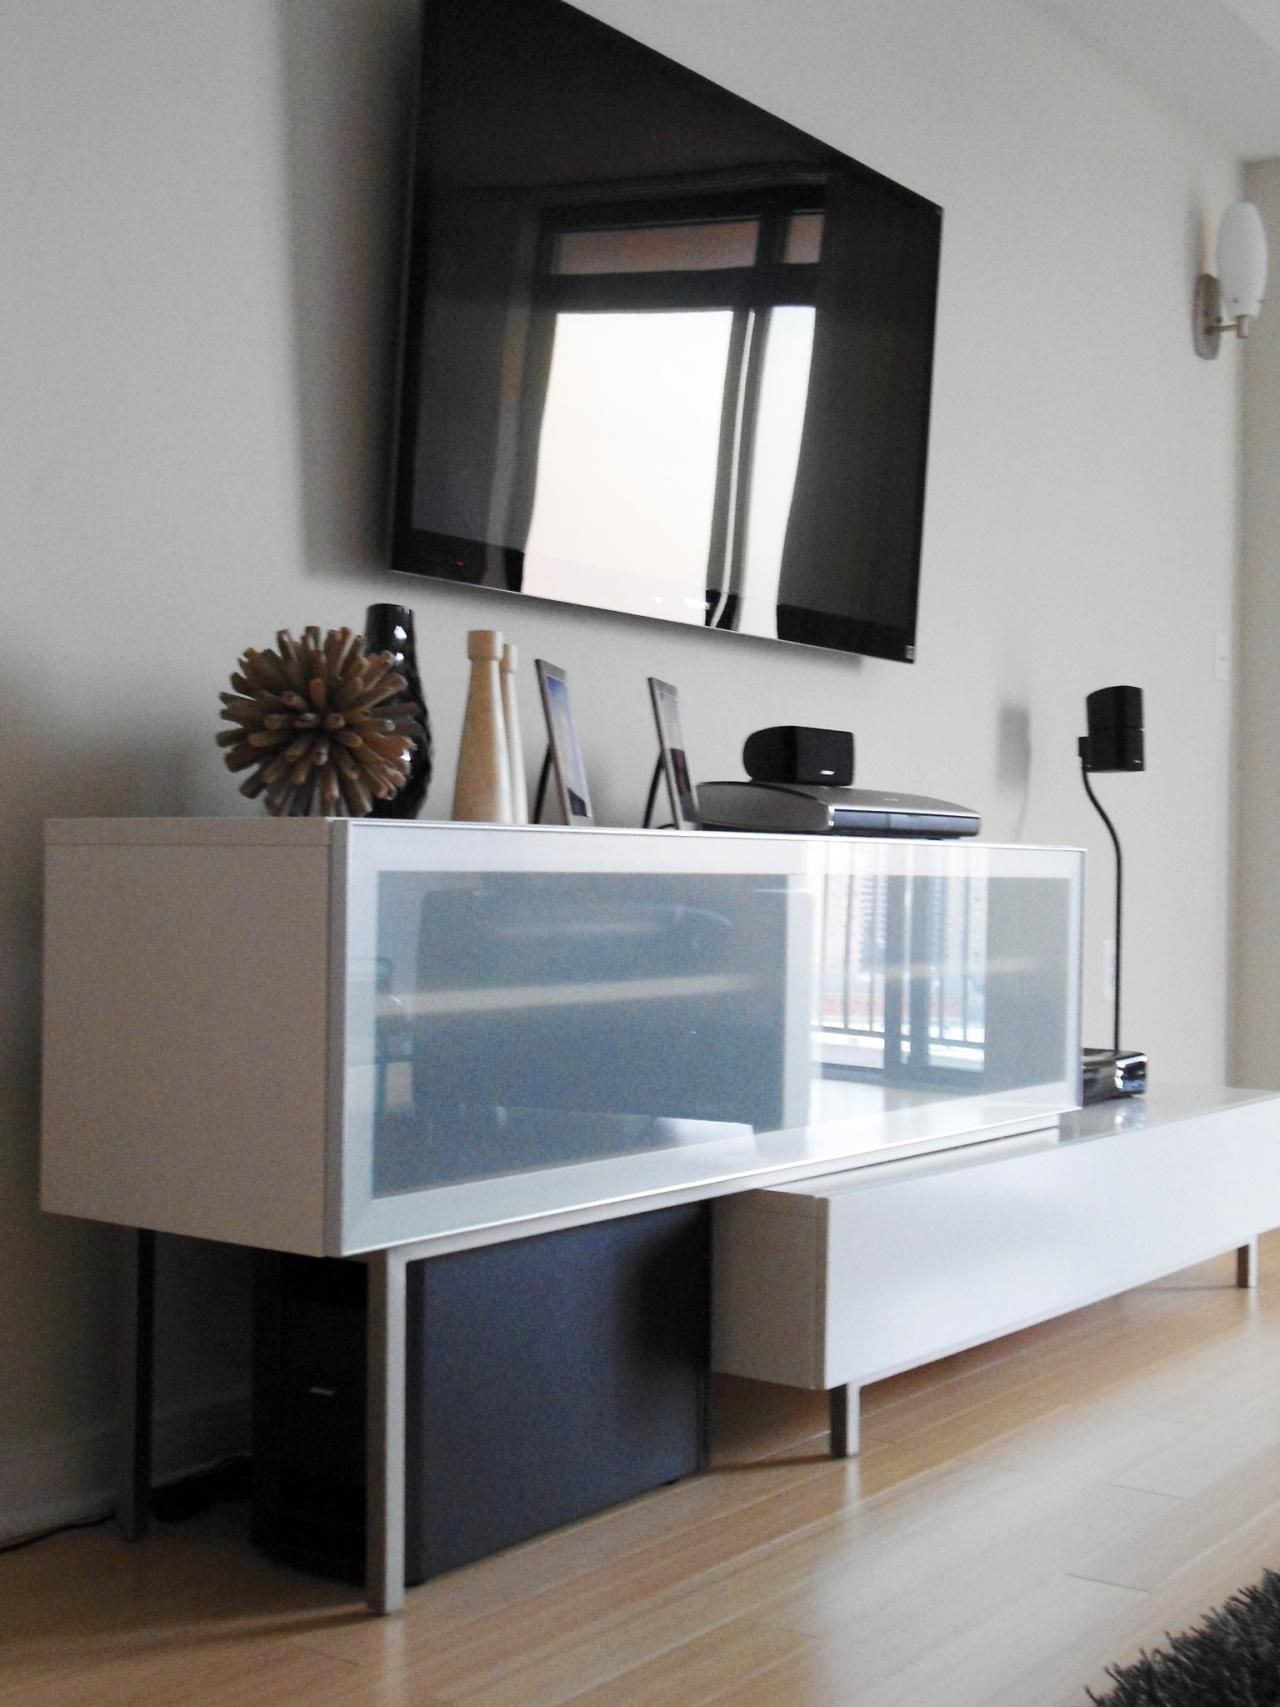 Attractive Media Storage Console #28 - A Wall-mounted Flat-panel TV Hangs Above A Modern Media Storage Console In  This Bachelor Pad Living Room. The Storage Unit Provides The Perfect  Solution For ...